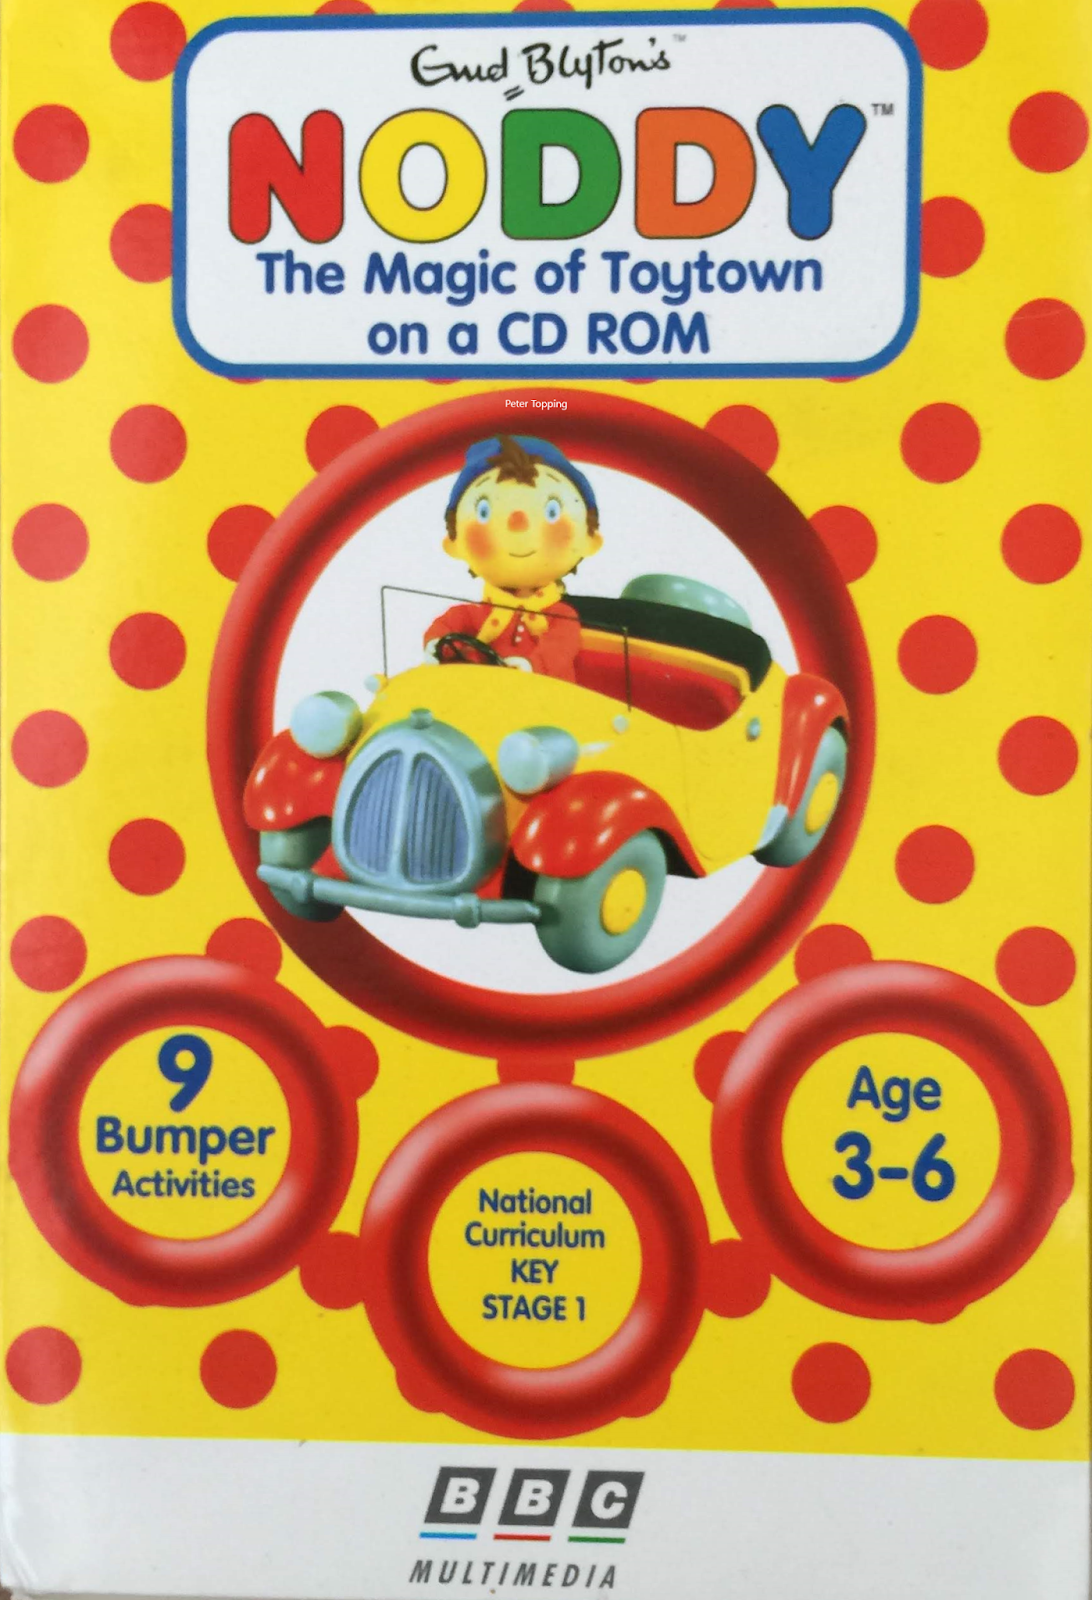 Noddy: The Magic of Toytown